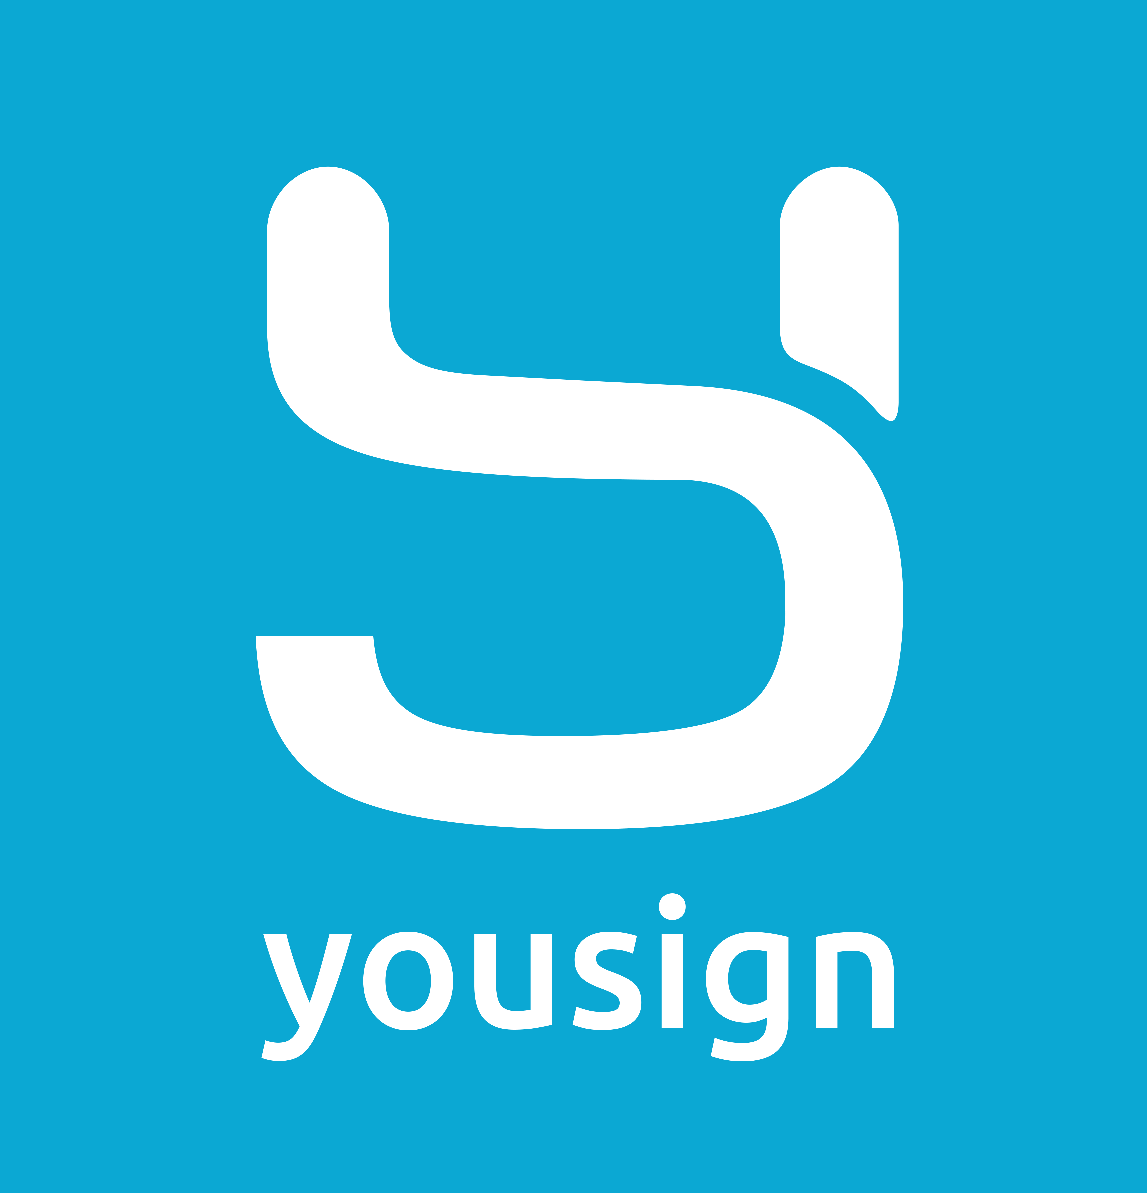 YOUSIGN